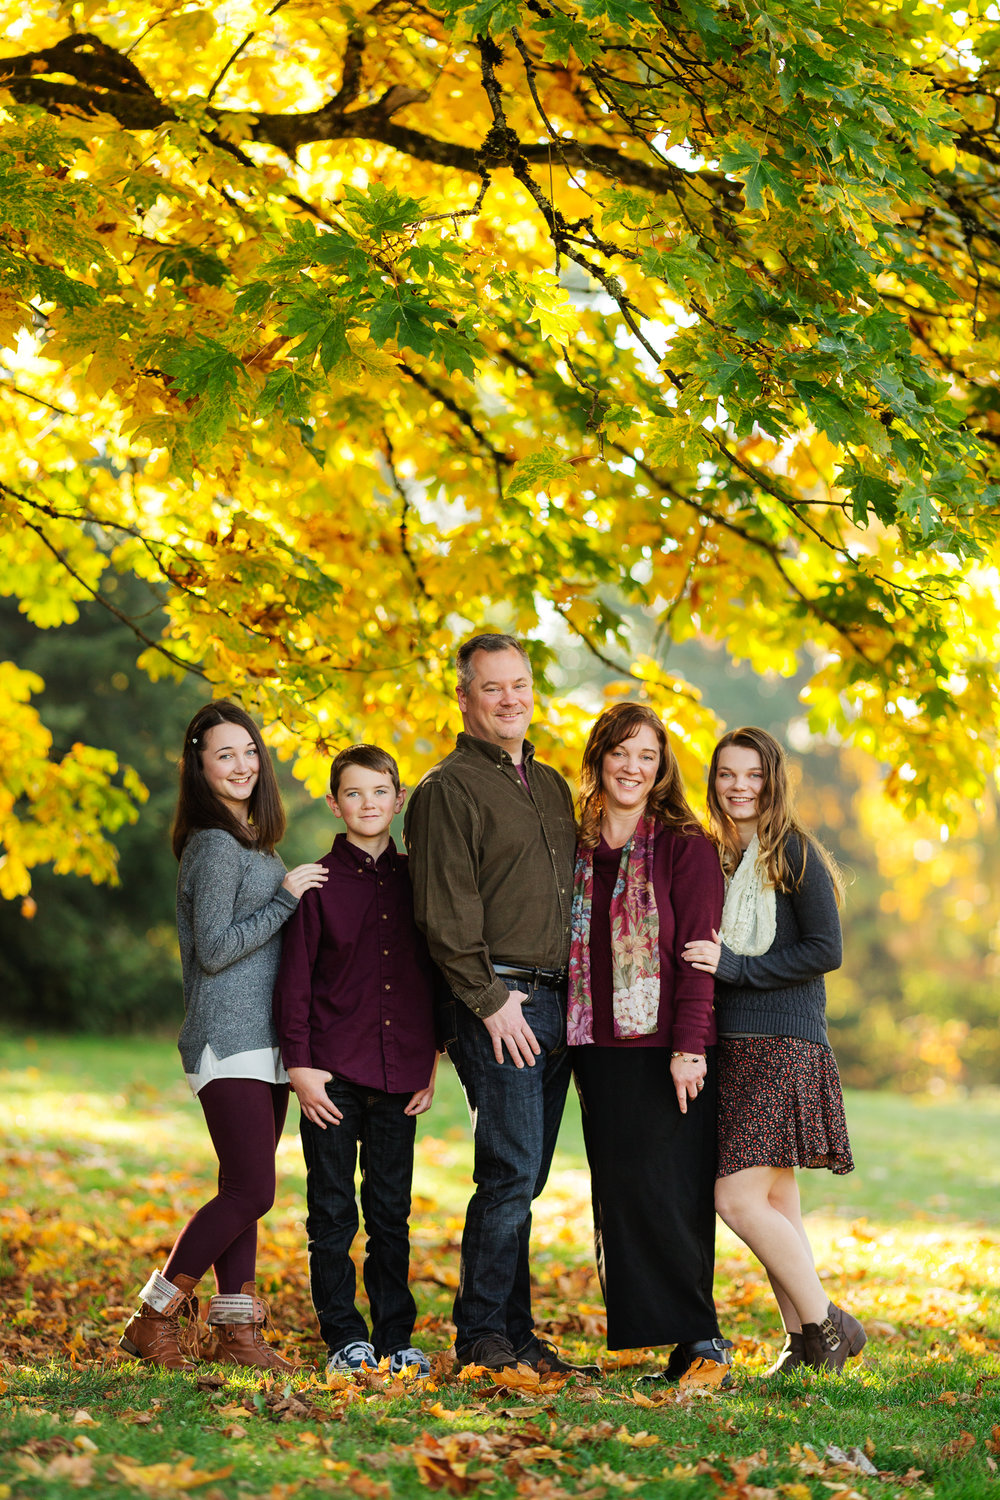 ariellanoellephotography-family-portrait-session-fall-mini-photographer-seniors-highschool-portraiture-child-photographer-1-8.jpg